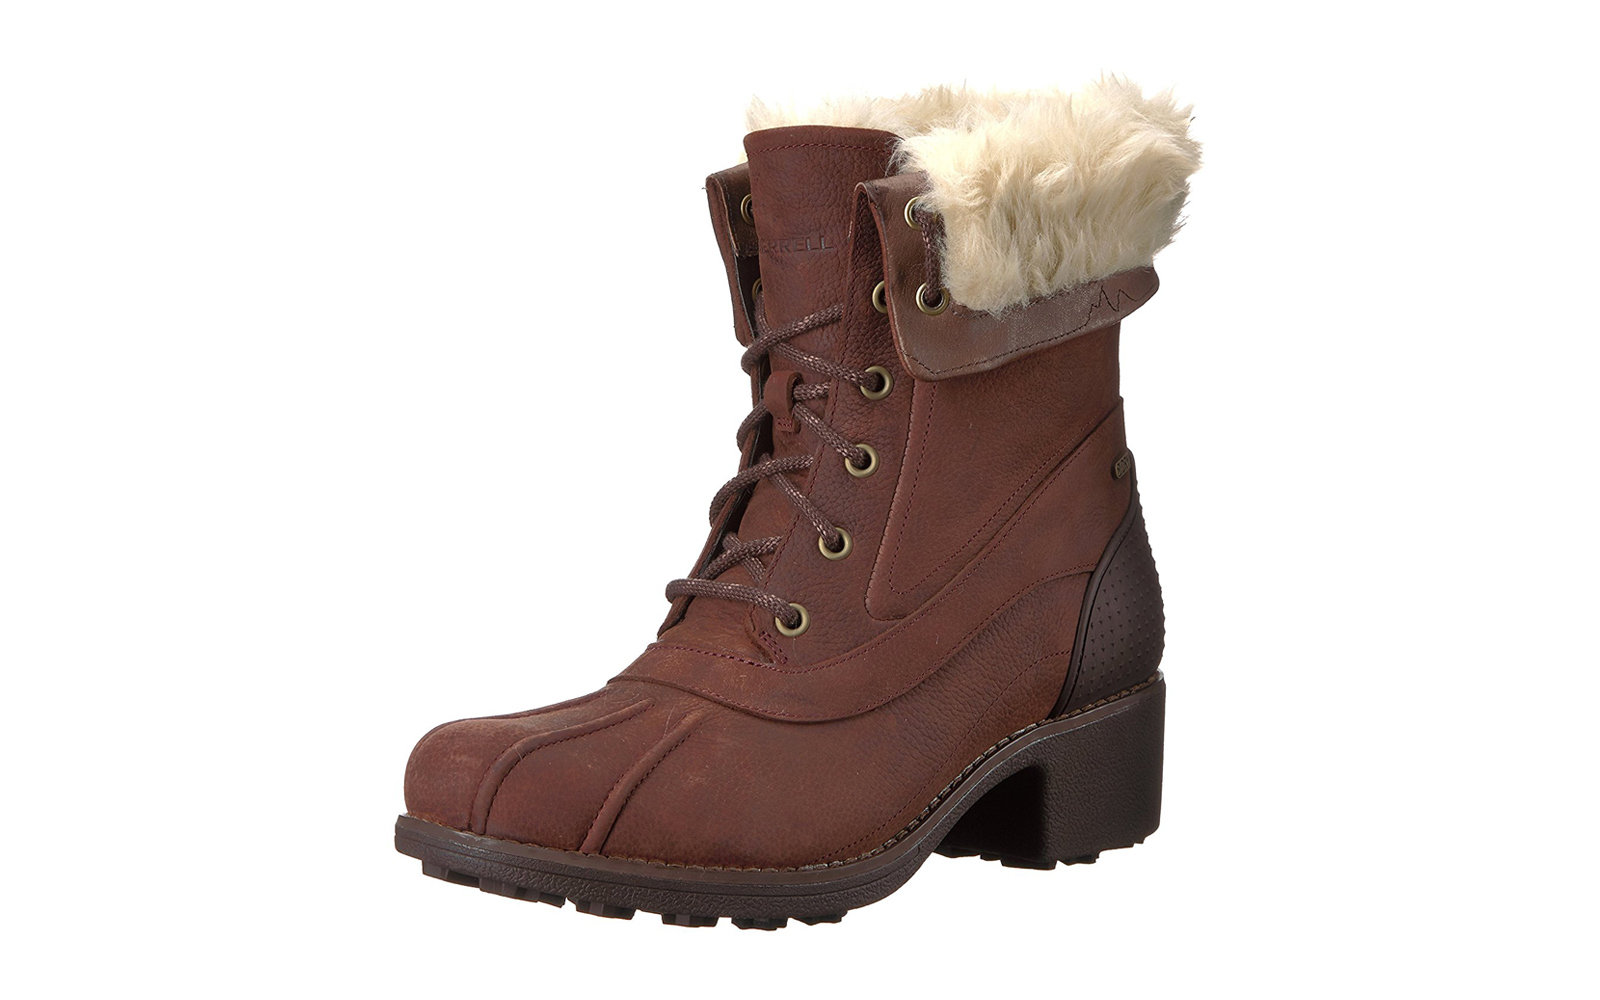 Merrell Chateau Mid Lace Polar Waterproof Boot